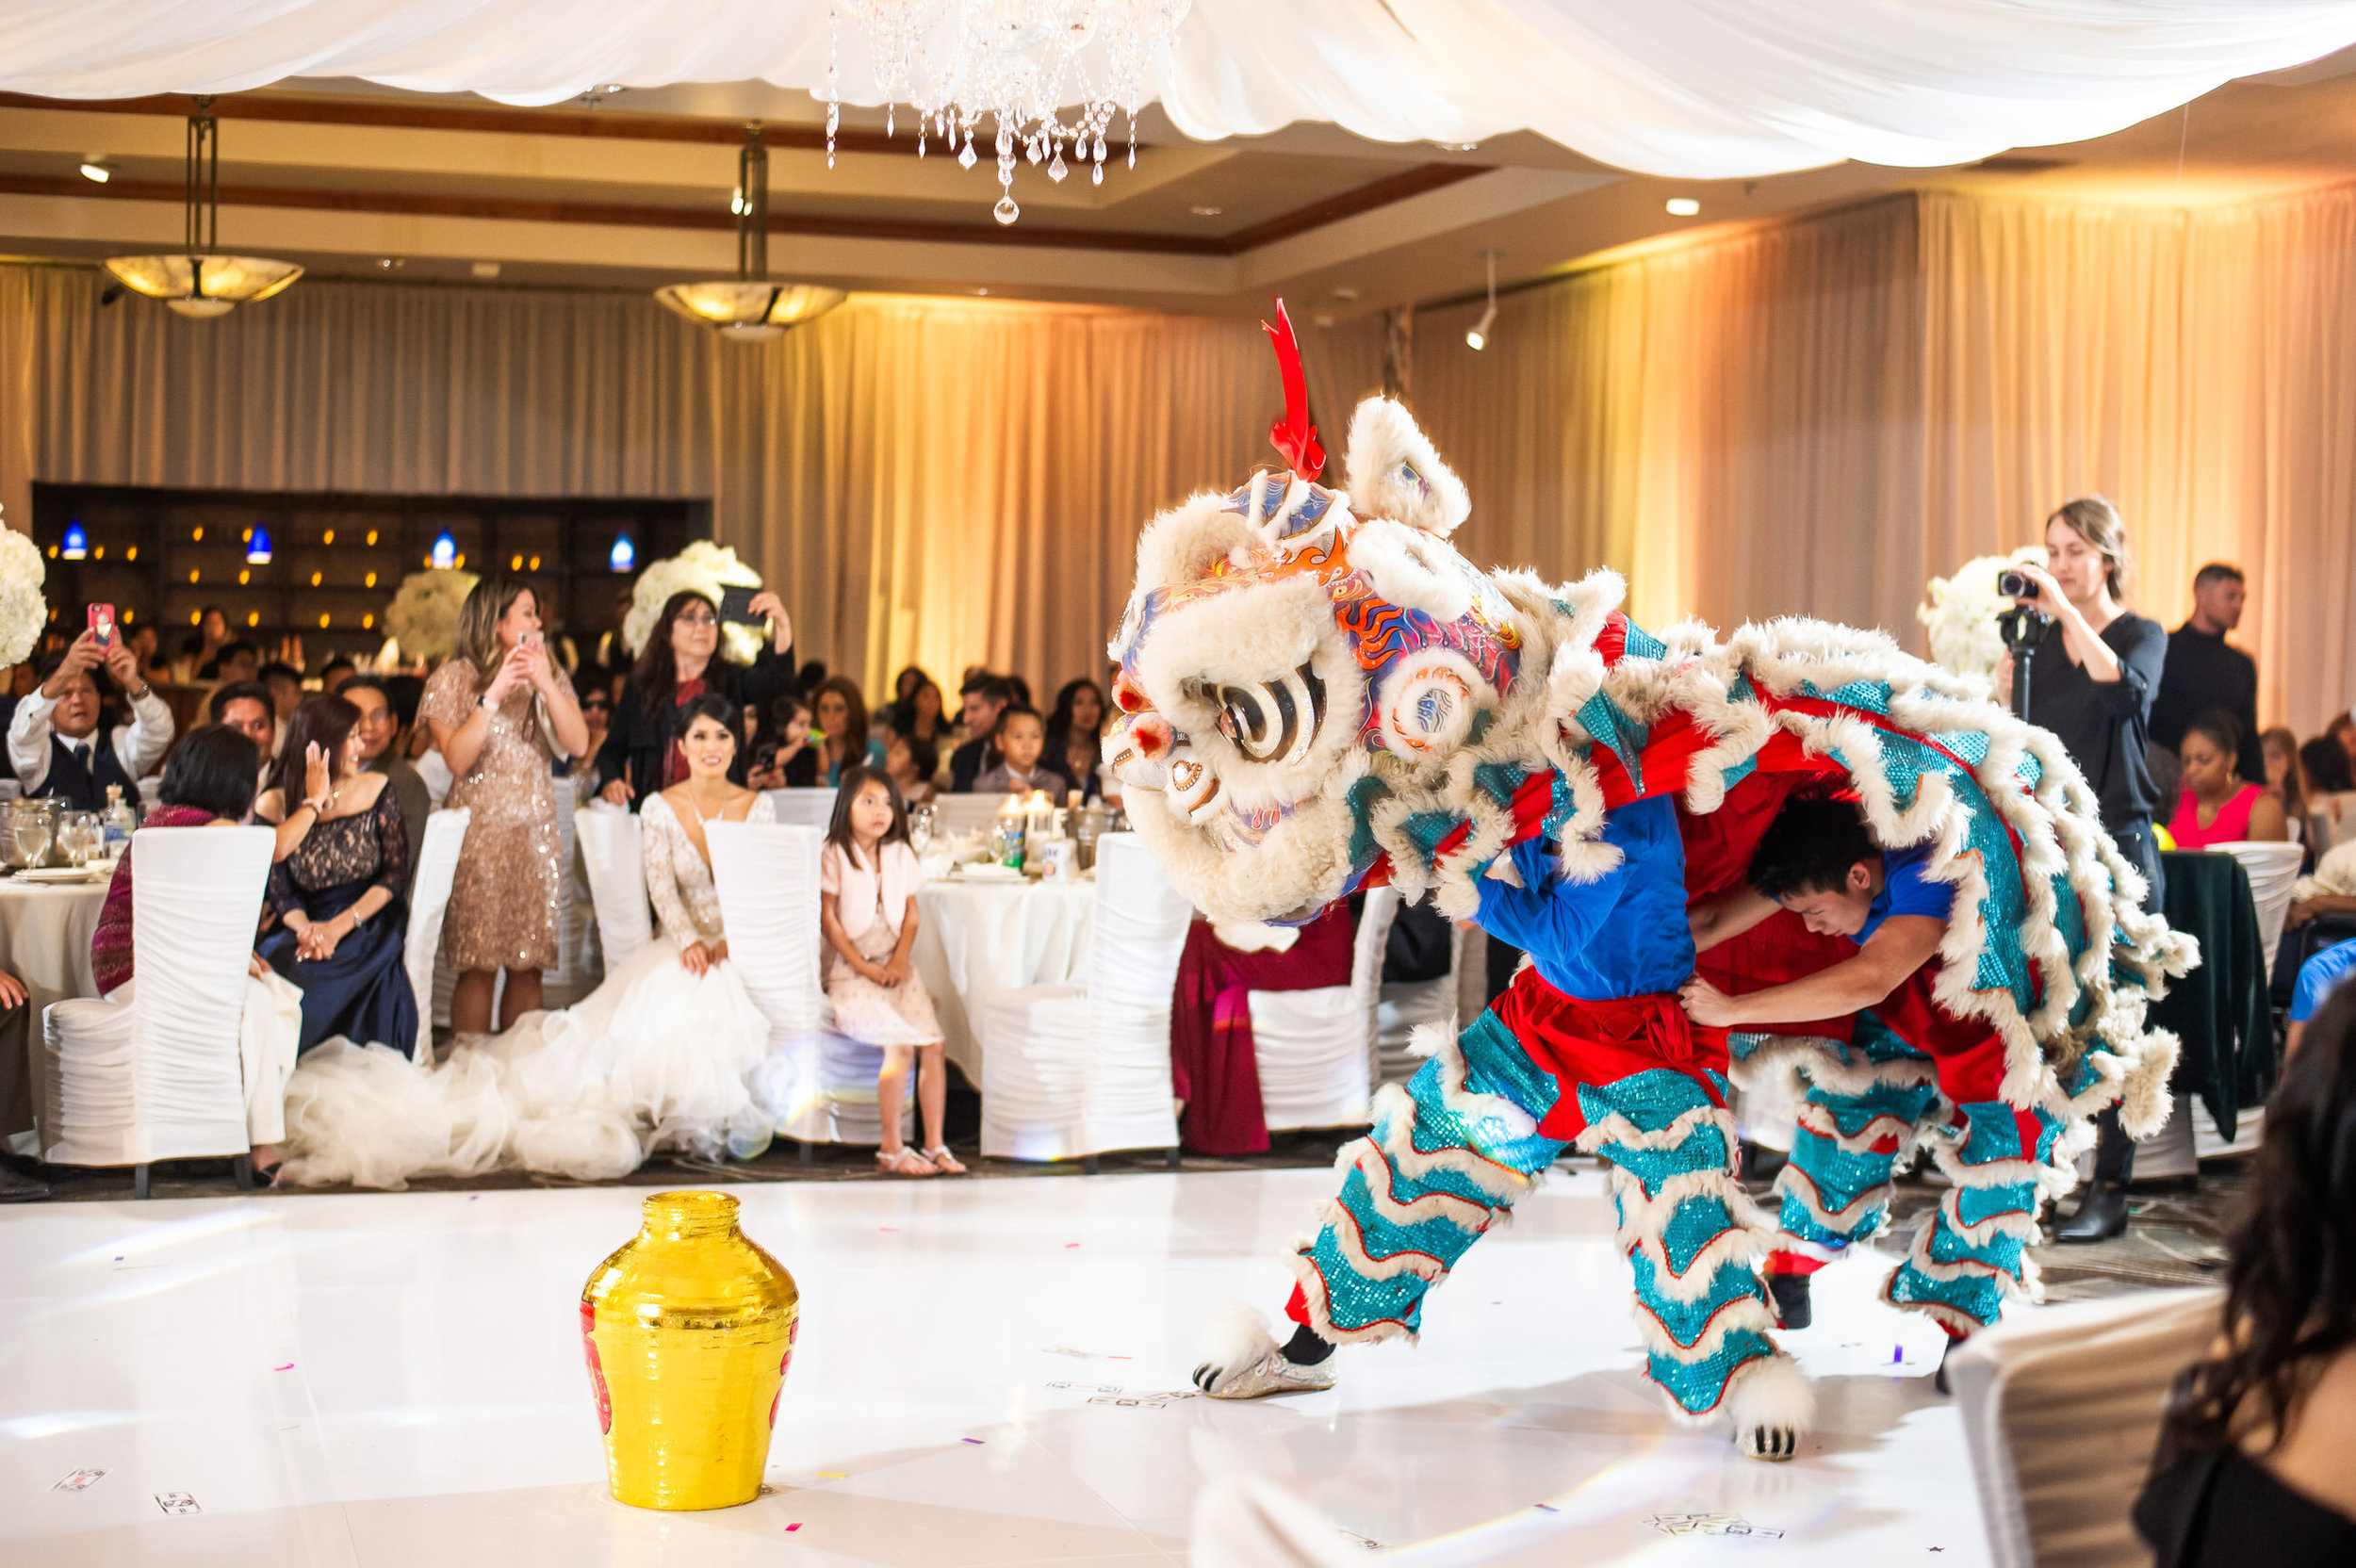 Dream_Wedding_Thanh_Thanh-21019.jpg